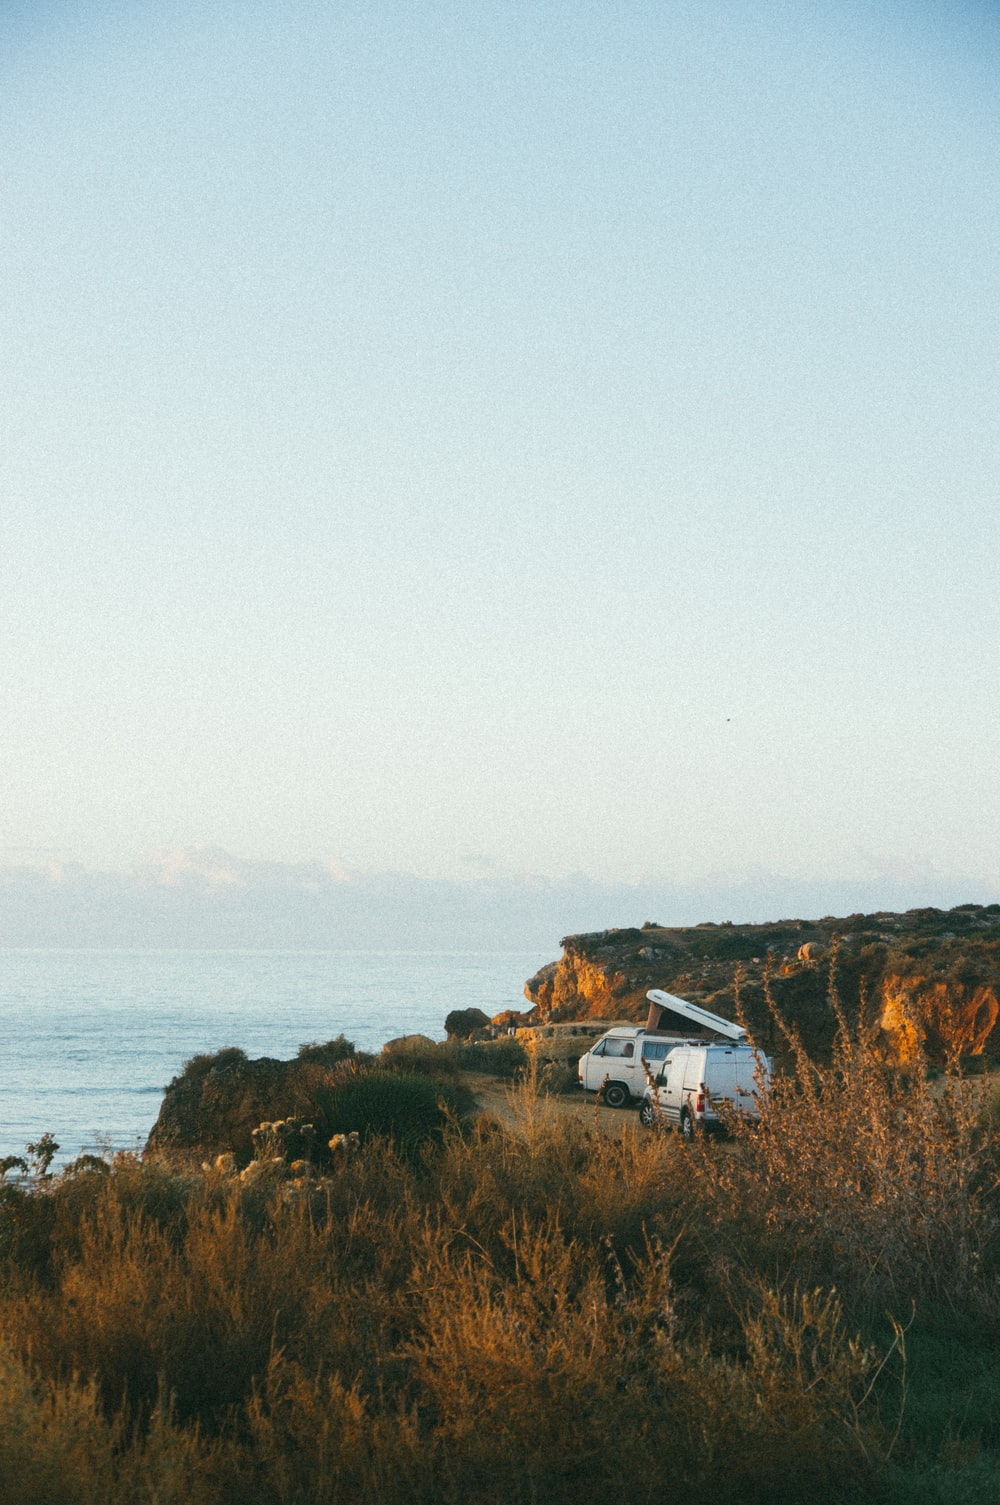 white van near cliff during daytime